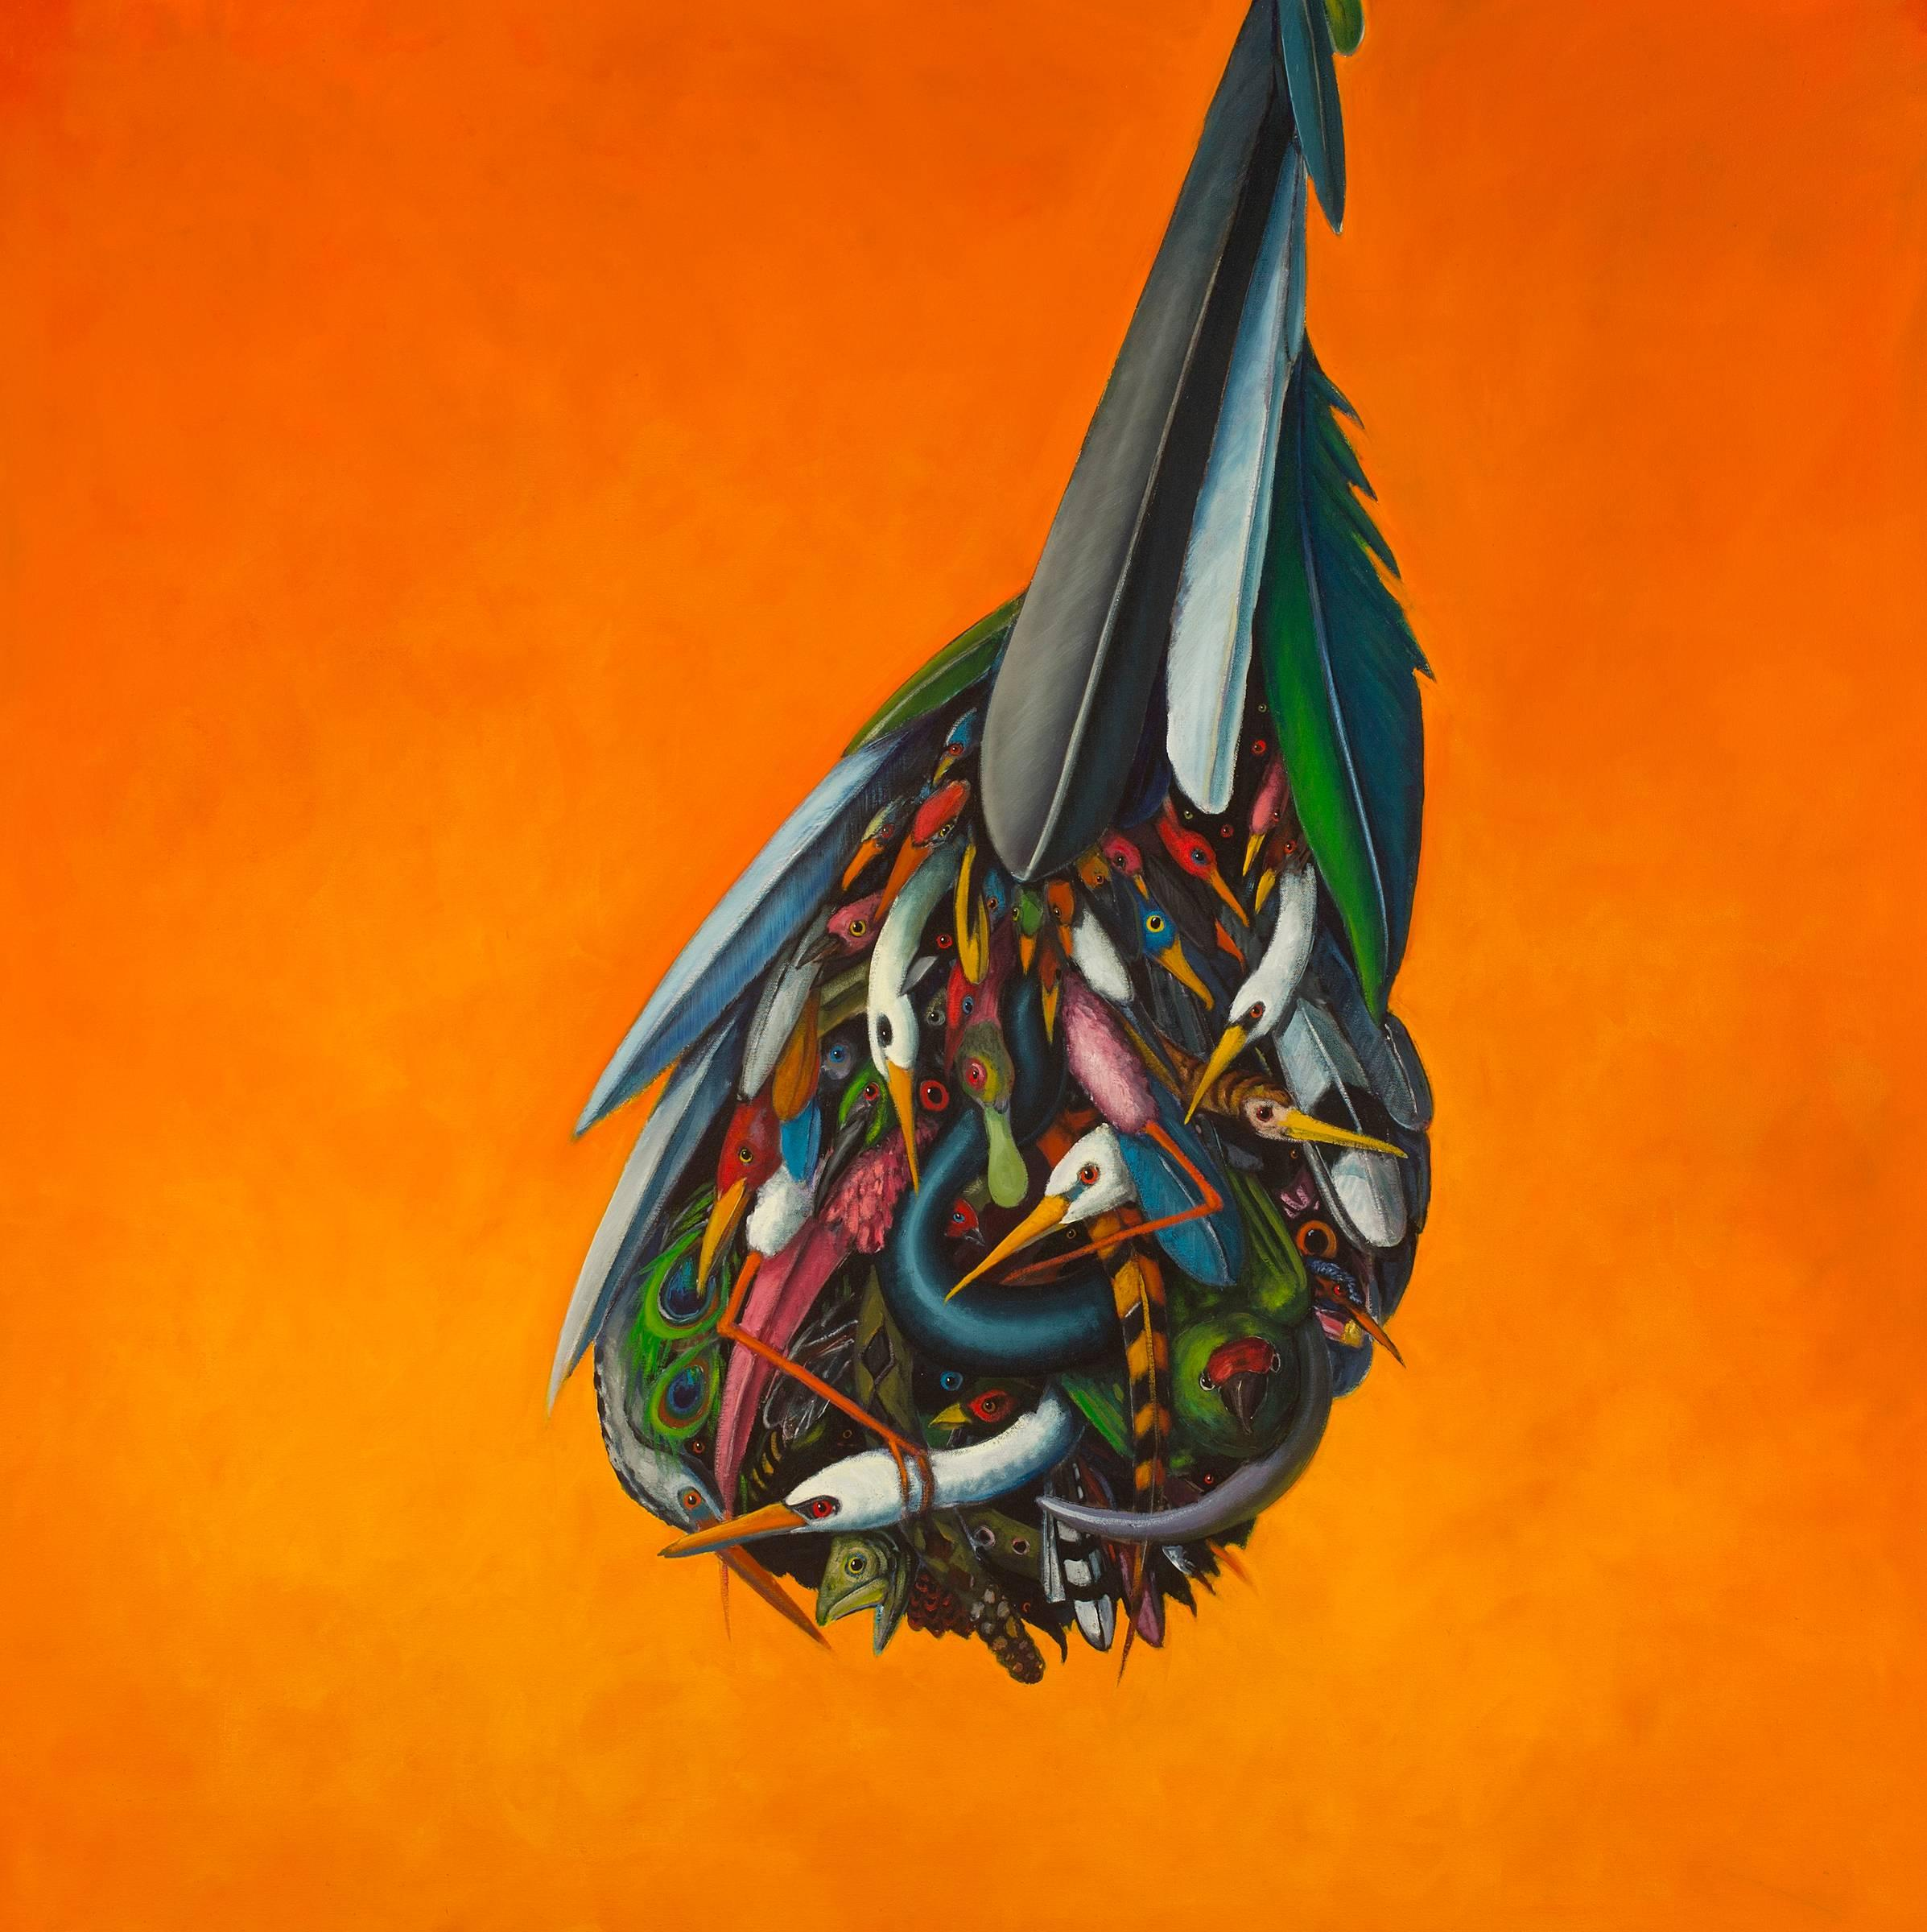 Drop, Orange and Colorful Abstract Bird Painting, Oil on Canvas